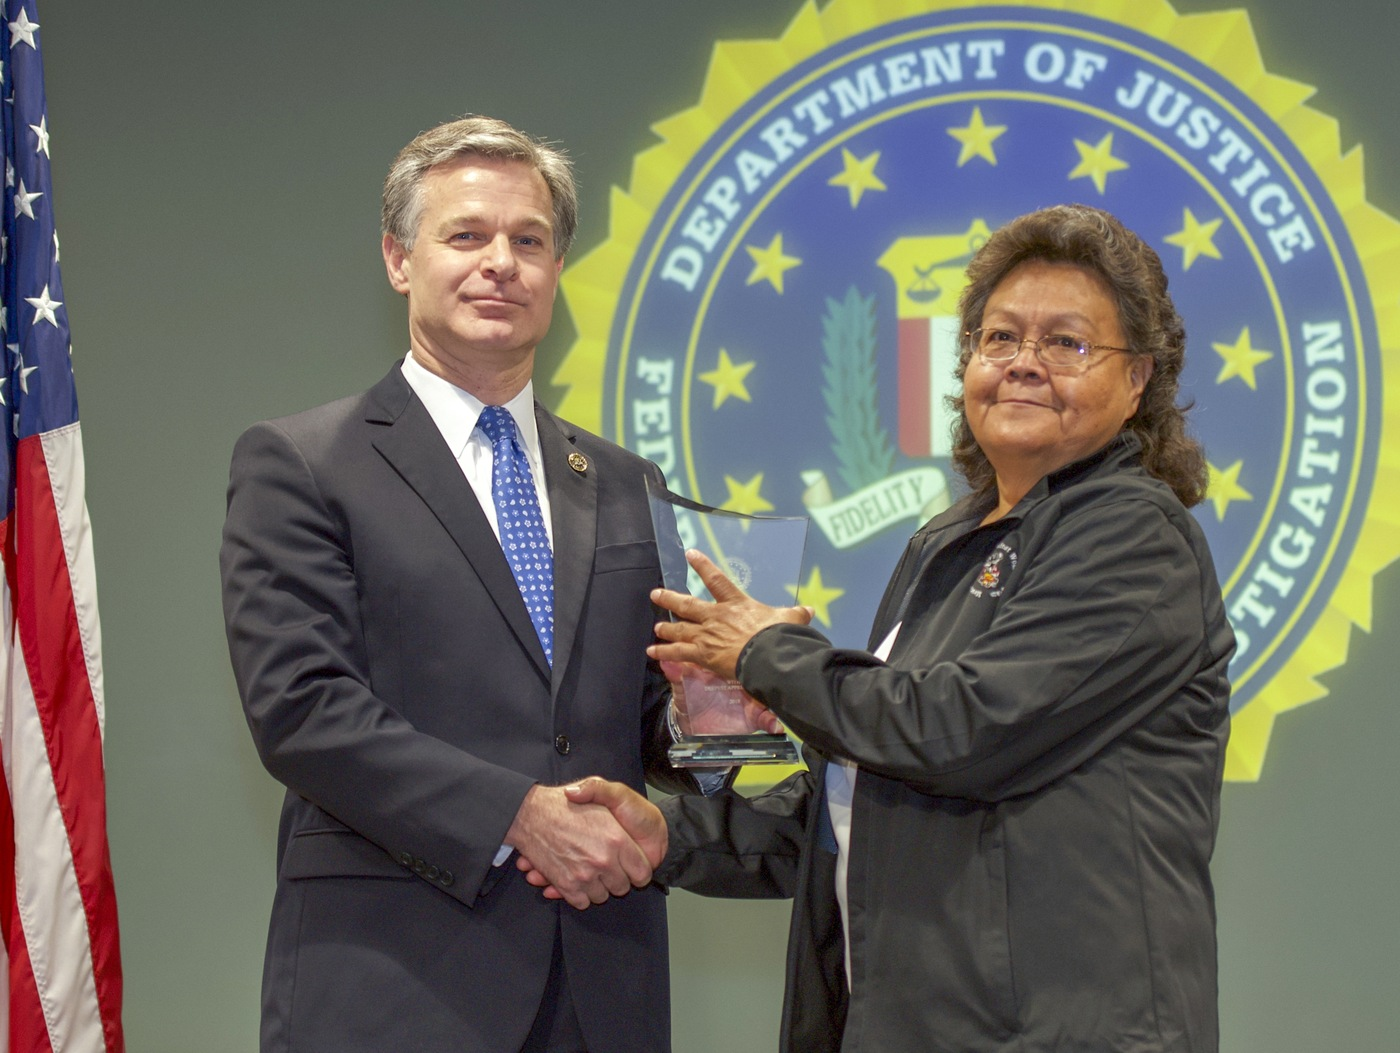 FBI Director Christopher Wray presents Albuquerque Division recipient the Mescalero Apache Tribe Violence Against Women Program (represented by Lola M. Ahidley) with the Director's Community Leadership Award (DCLA) at a ceremony at FBI Headquarters on May 3, 2019.